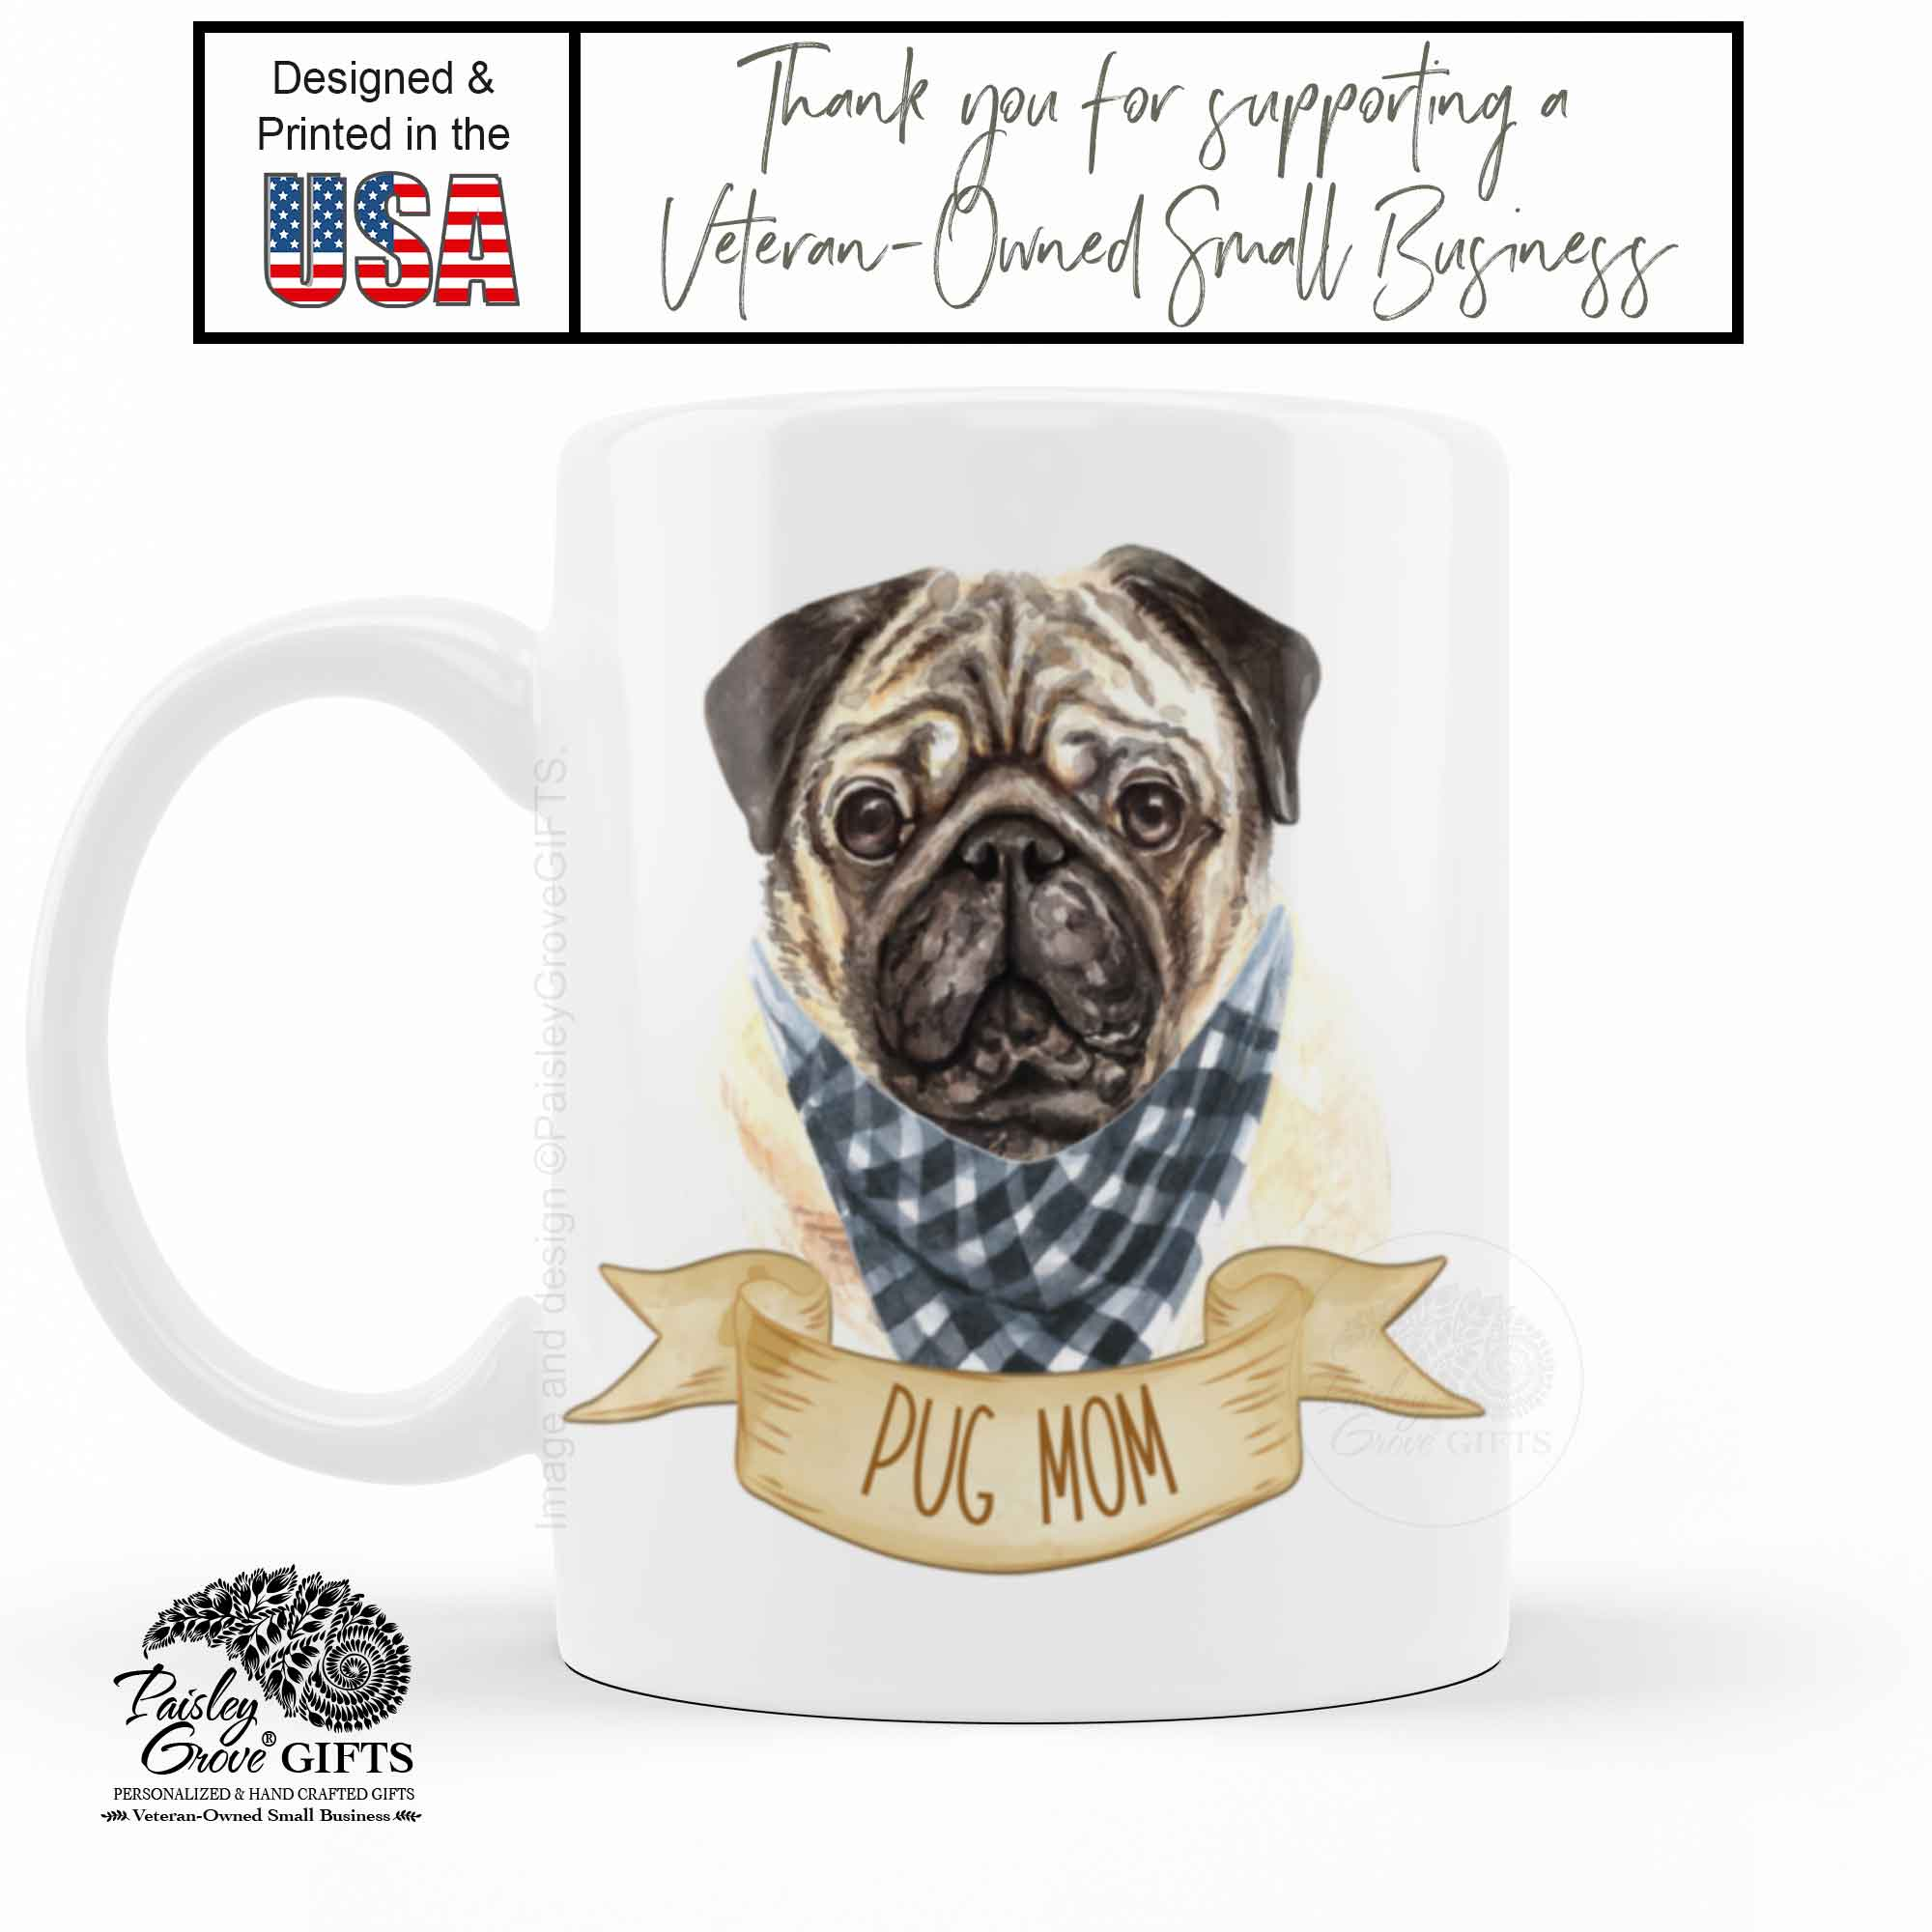 CopyrightPaisleyGroveGIFTS P009c1 Pug mom coffee cup with cute pug in bandana is printed in the usa